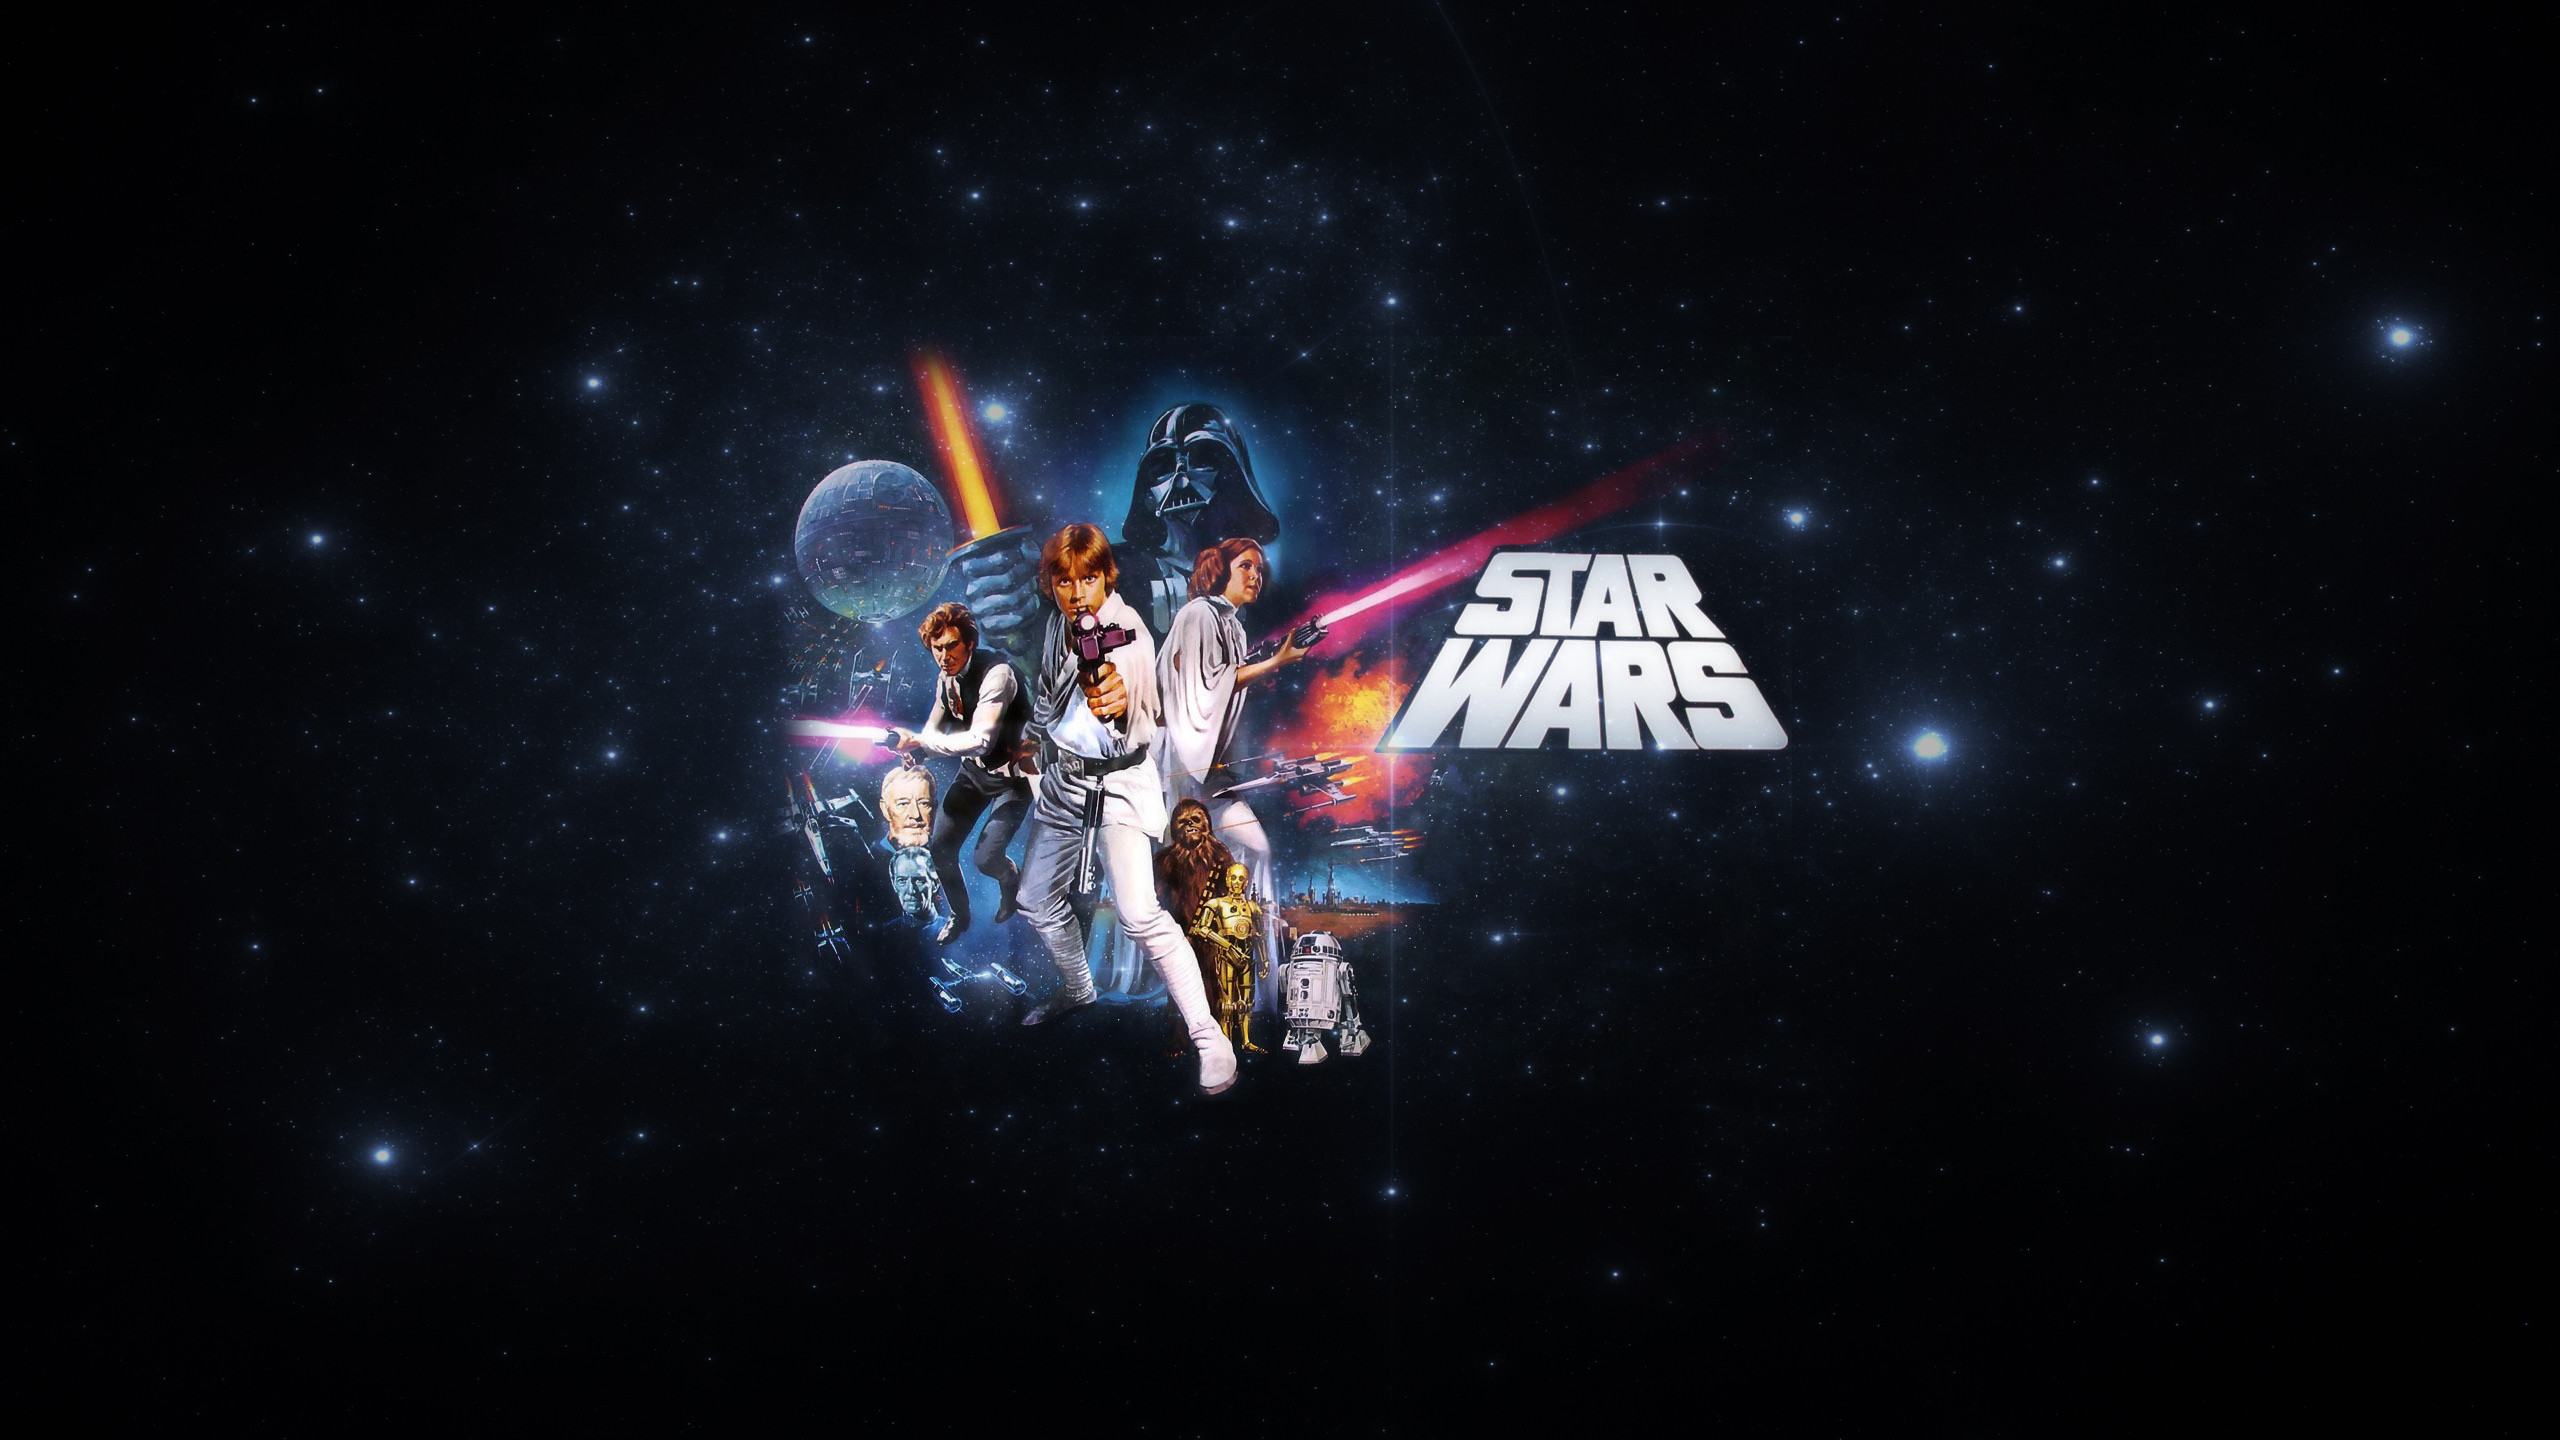 Star Wars A New Hope Wallpaper